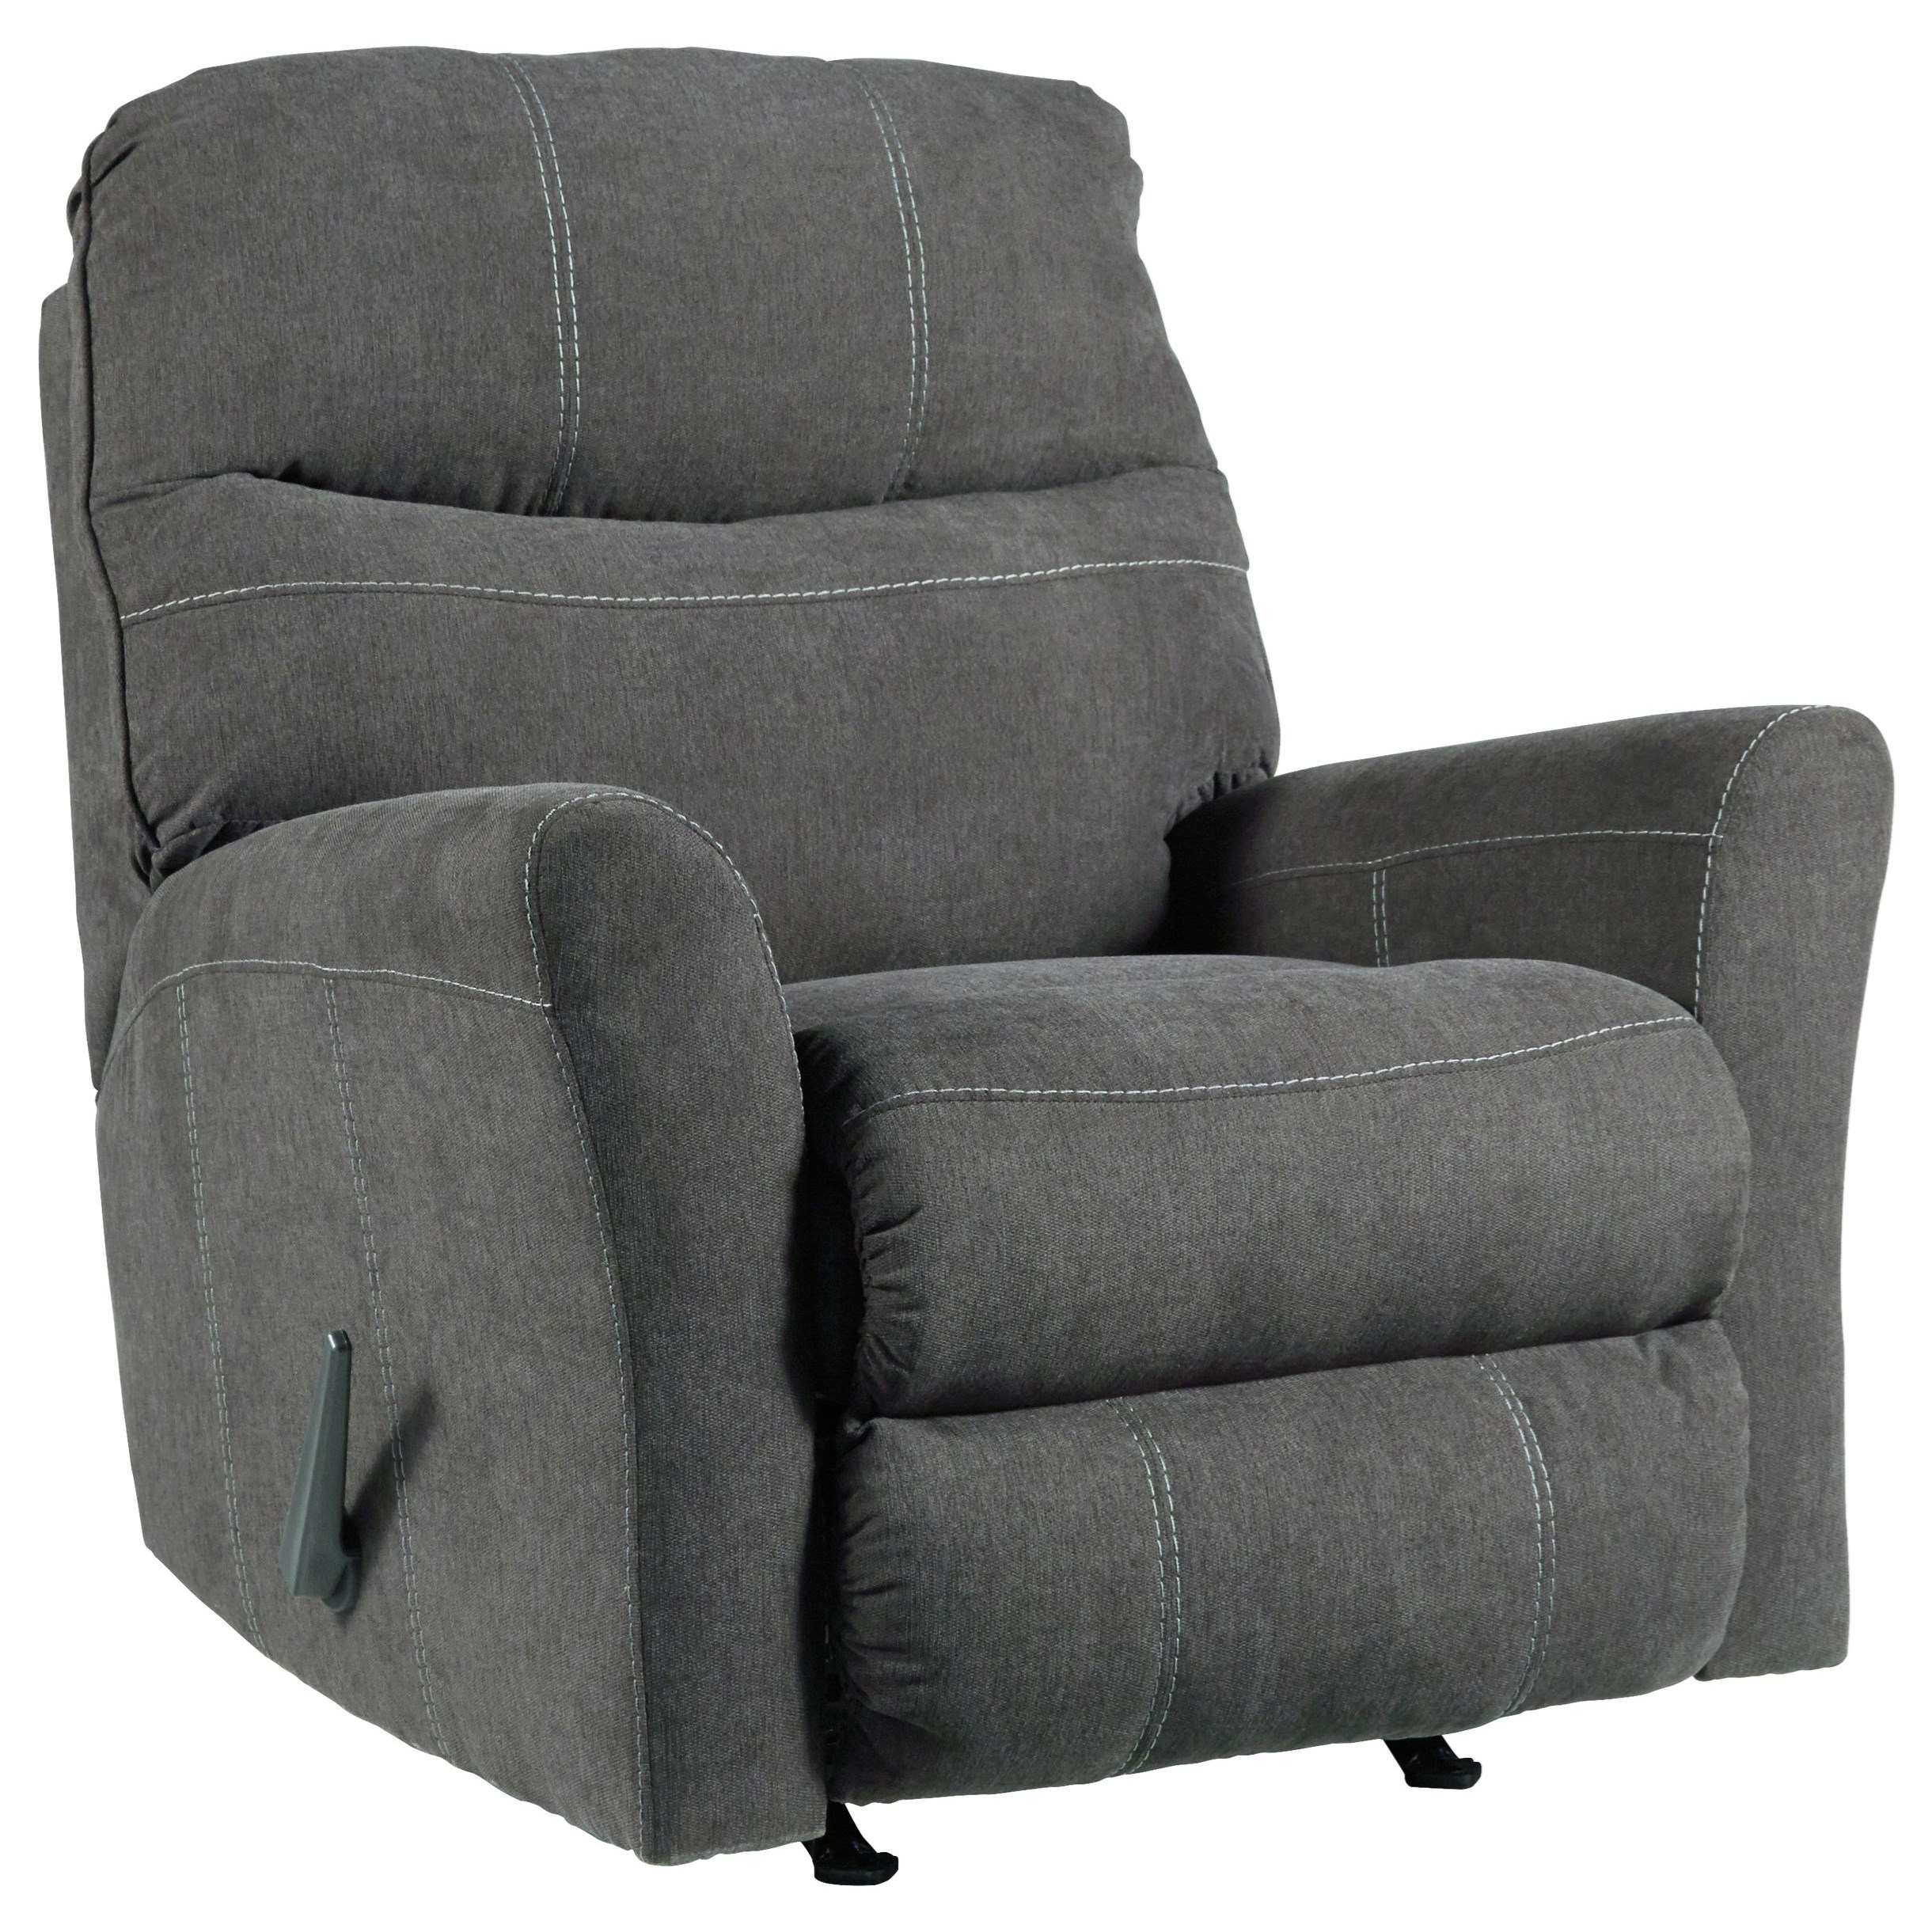 Maier - Charcoal Rocker Recliner by Benchcraft at Beck's Furniture